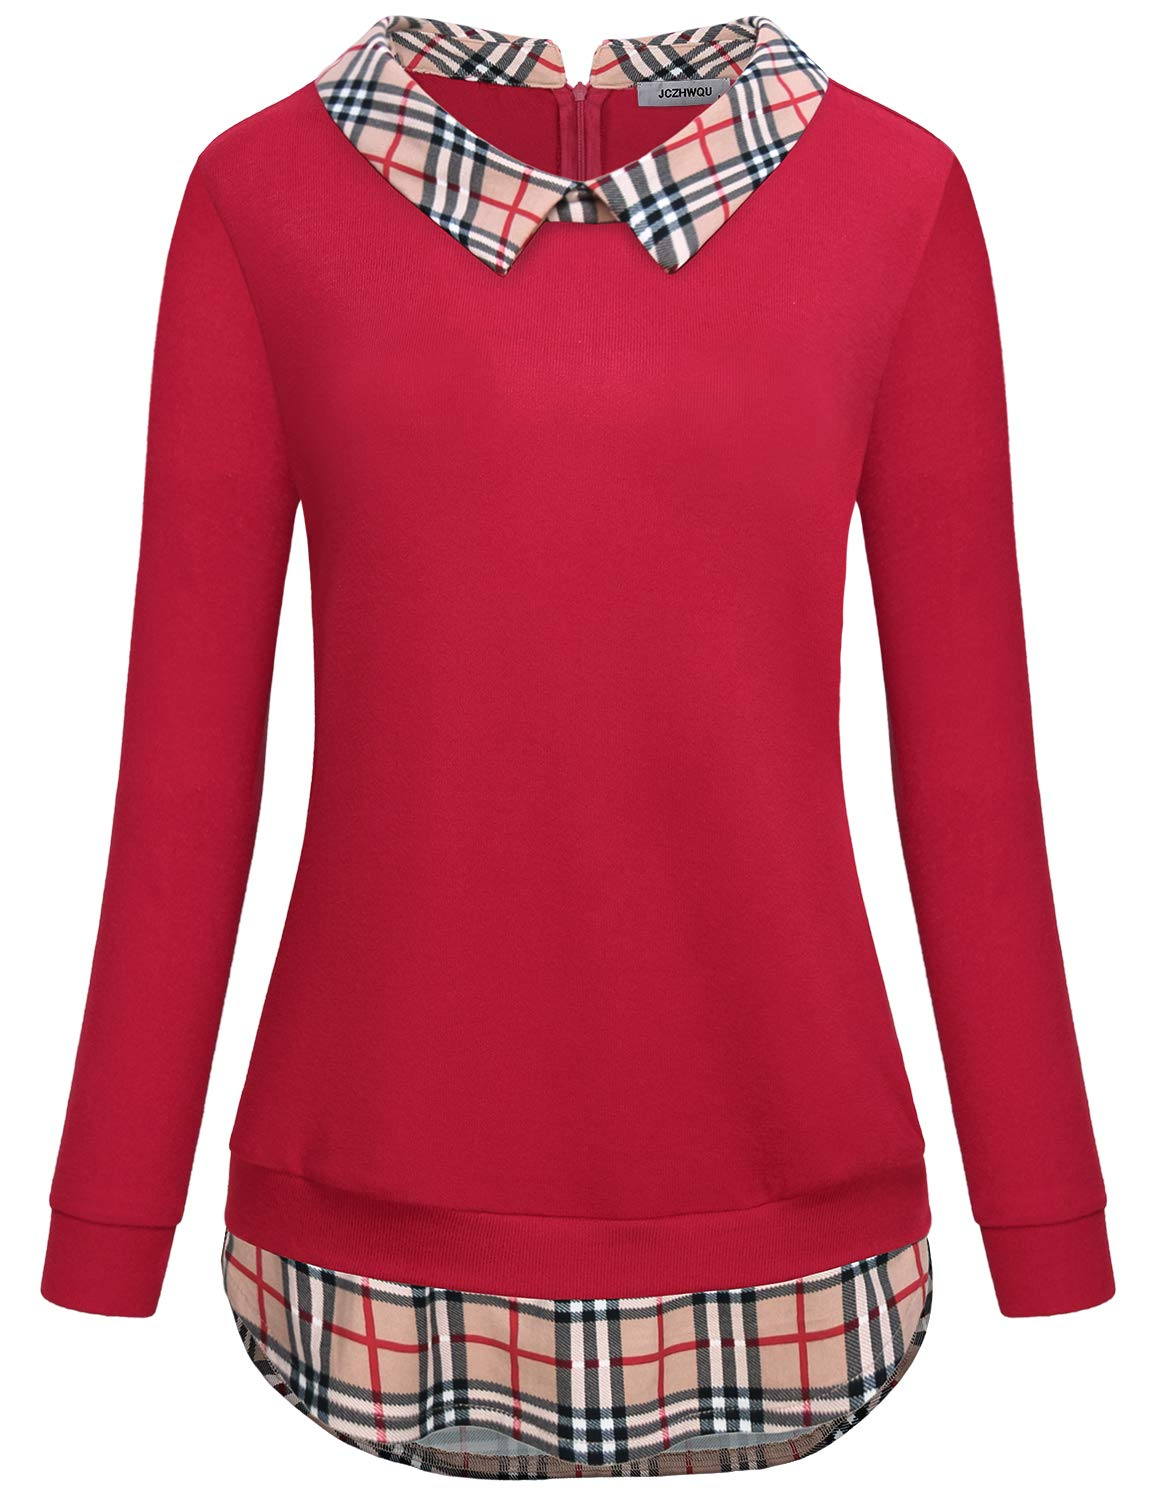 Long Sleeve Tops for Women Misses Blouses Grid Tartan Color Block Collared Round Hem Jersey Knitted Relaxed Fit Vibrant Stylish Special Meeting Wear Tunic Sweater Shirt Red XXL